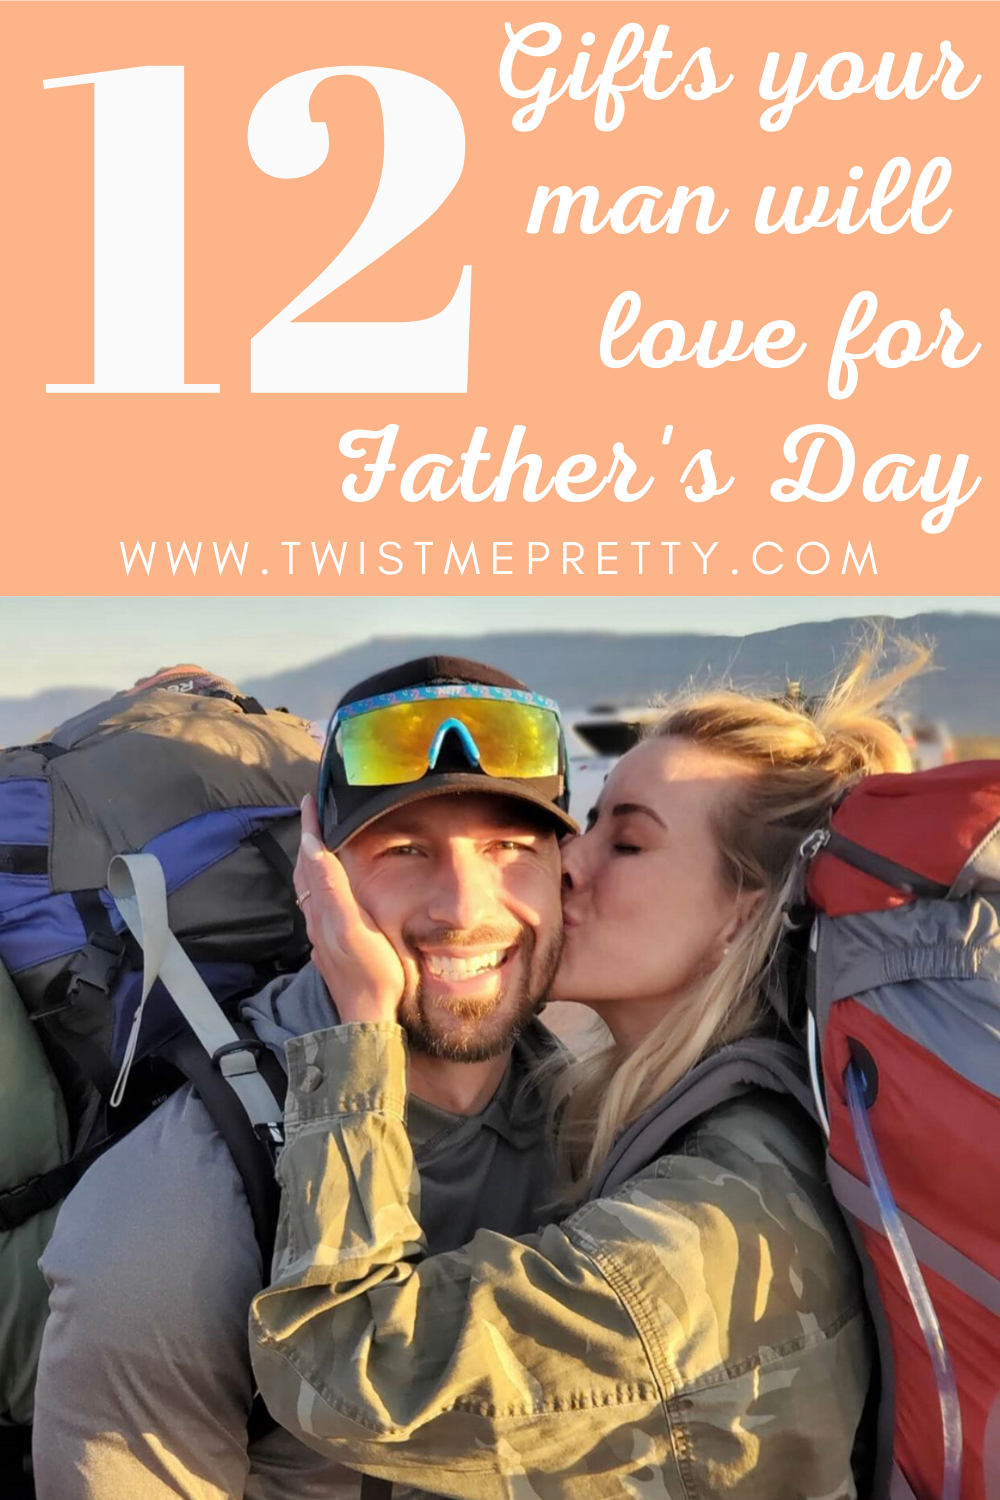 12 Gifts your man will love for Father's Day. www.twistmepretty.com